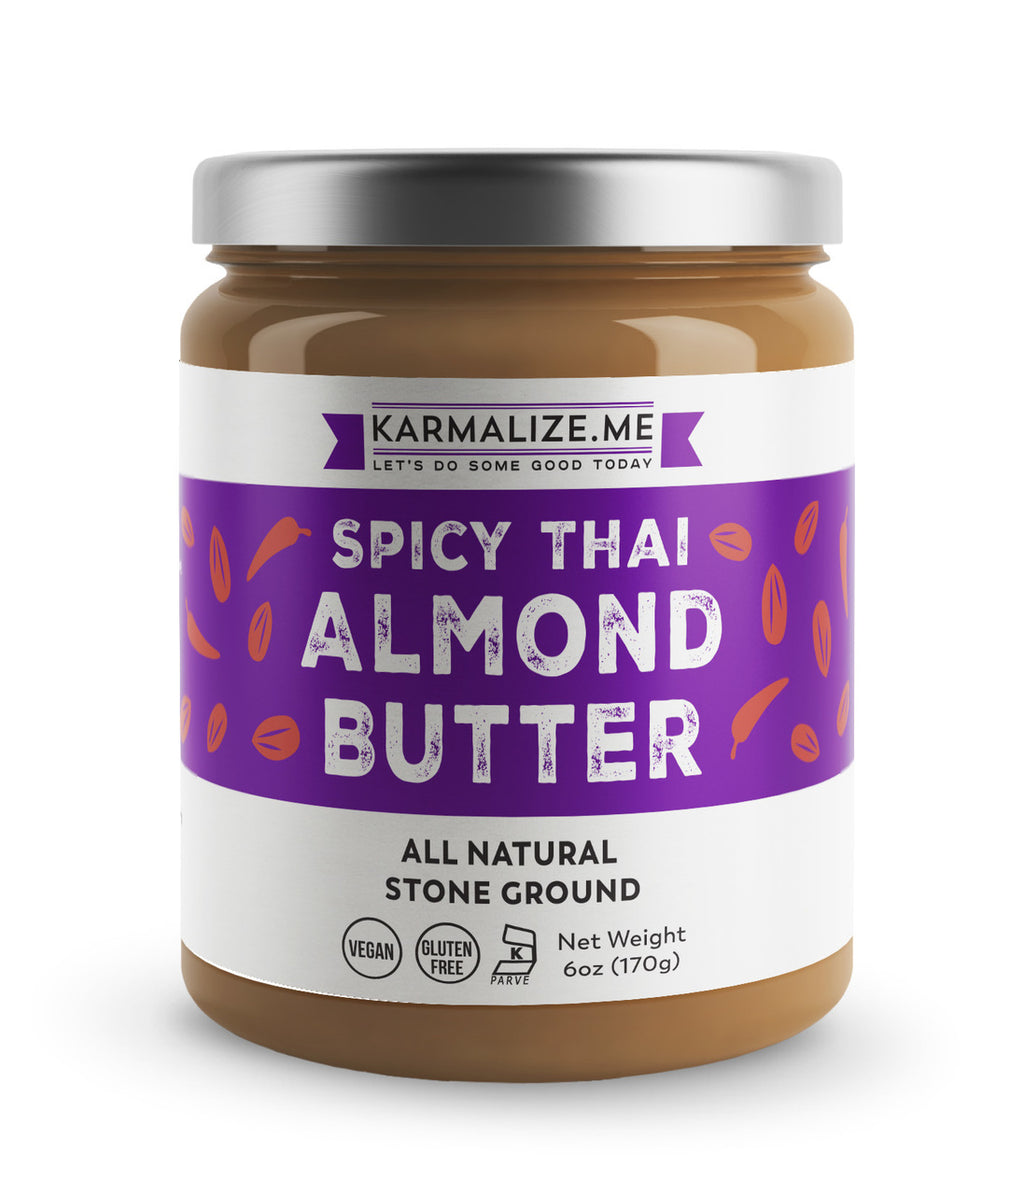 Vegan Spicy Thai Almond Butter